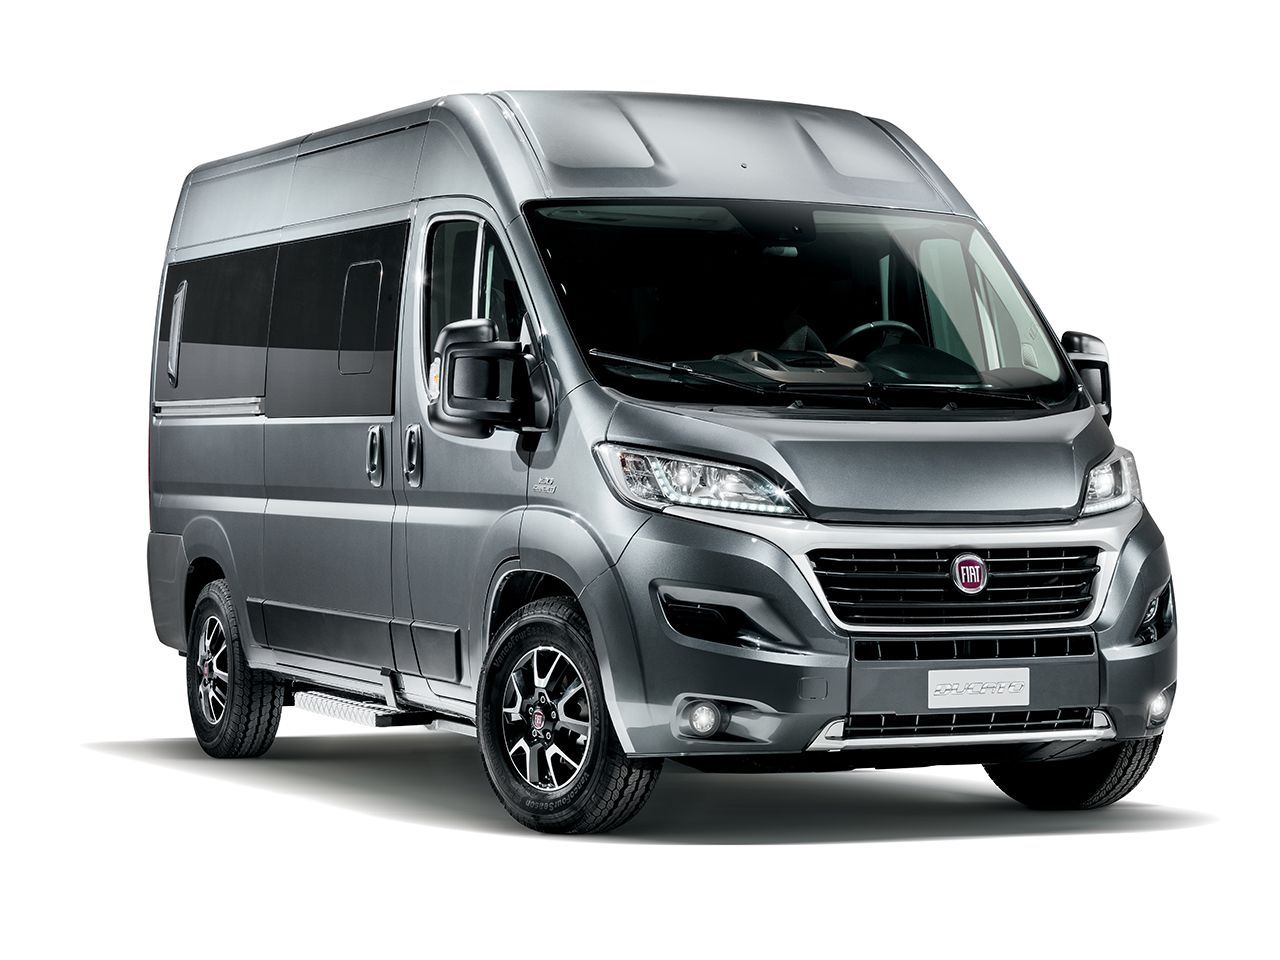 2014 yeni kasa fiat ducato geliyor. Black Bedroom Furniture Sets. Home Design Ideas